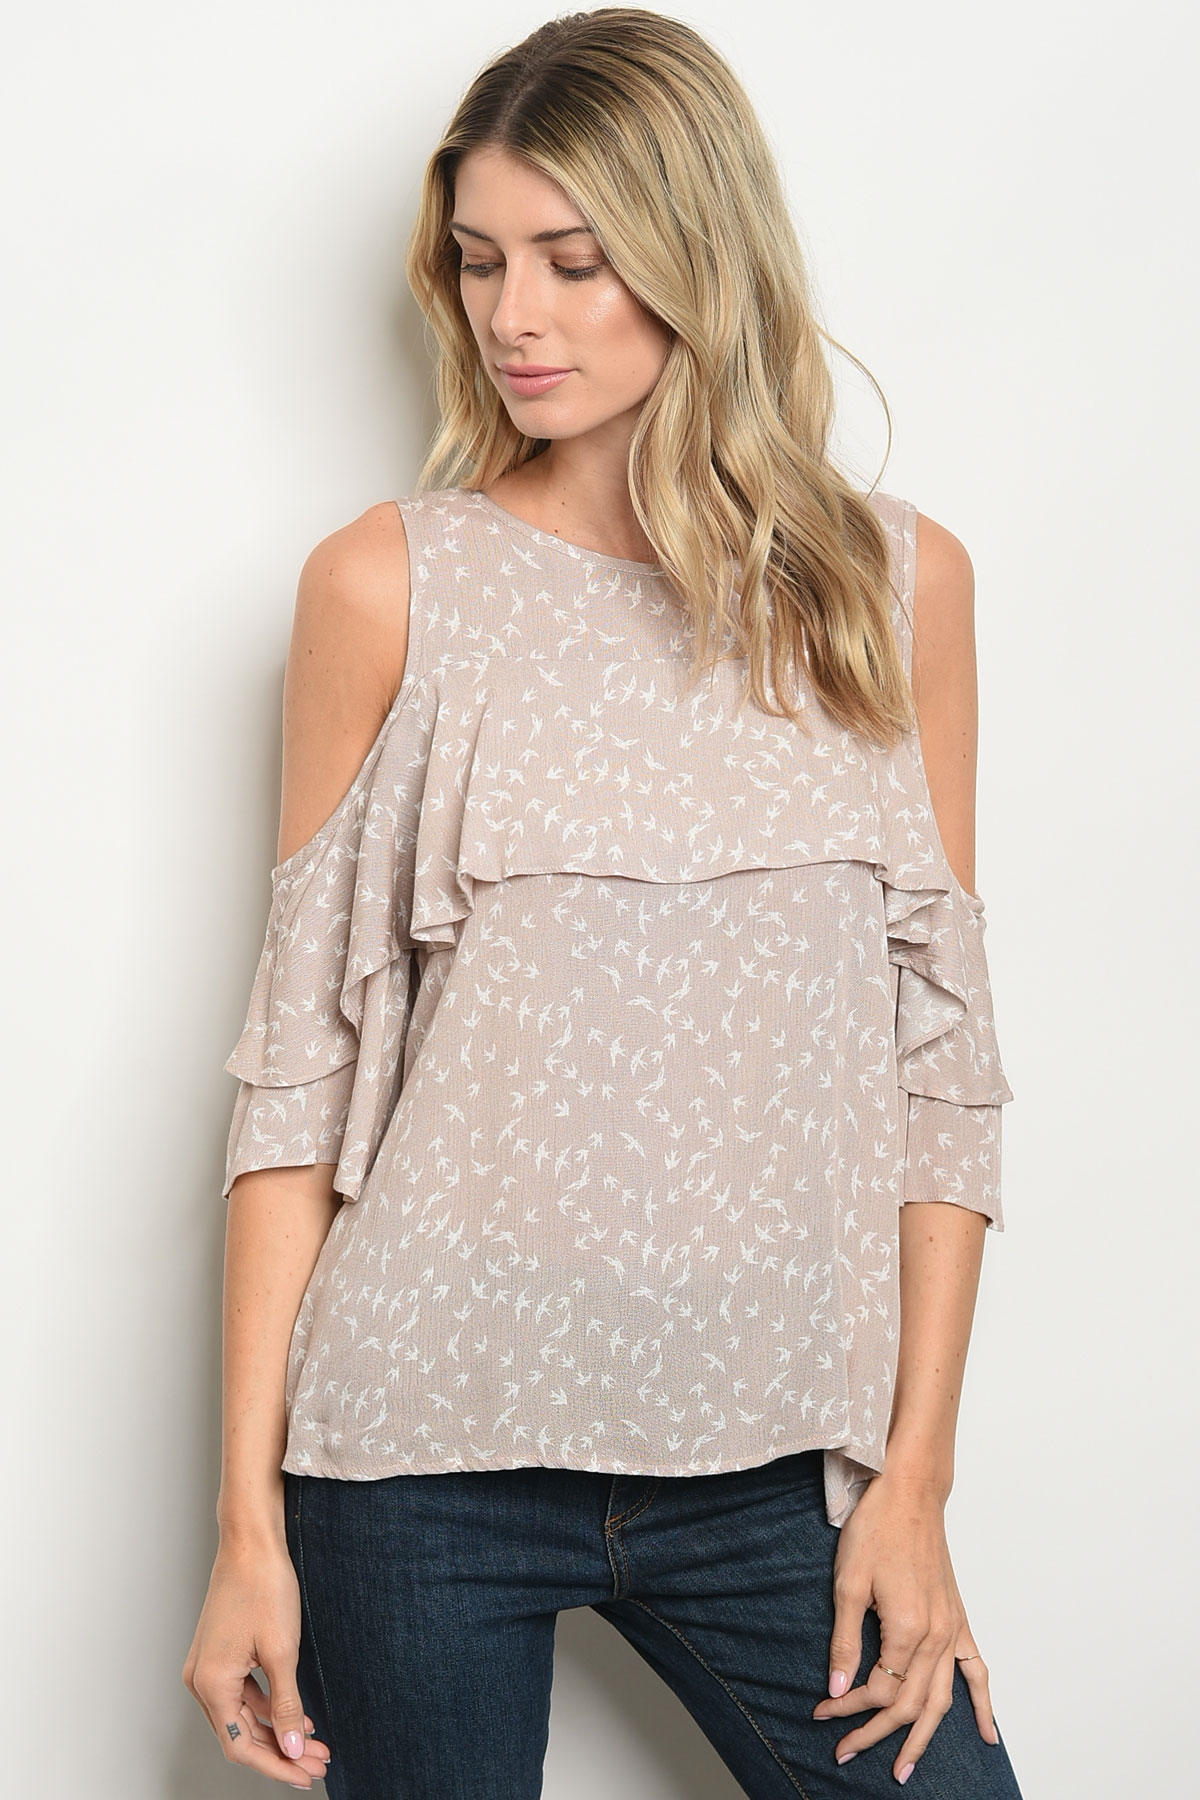 54926bad94784e ... TAUPE OFF WHITE TOP 2-2-2. Larger Photo ...